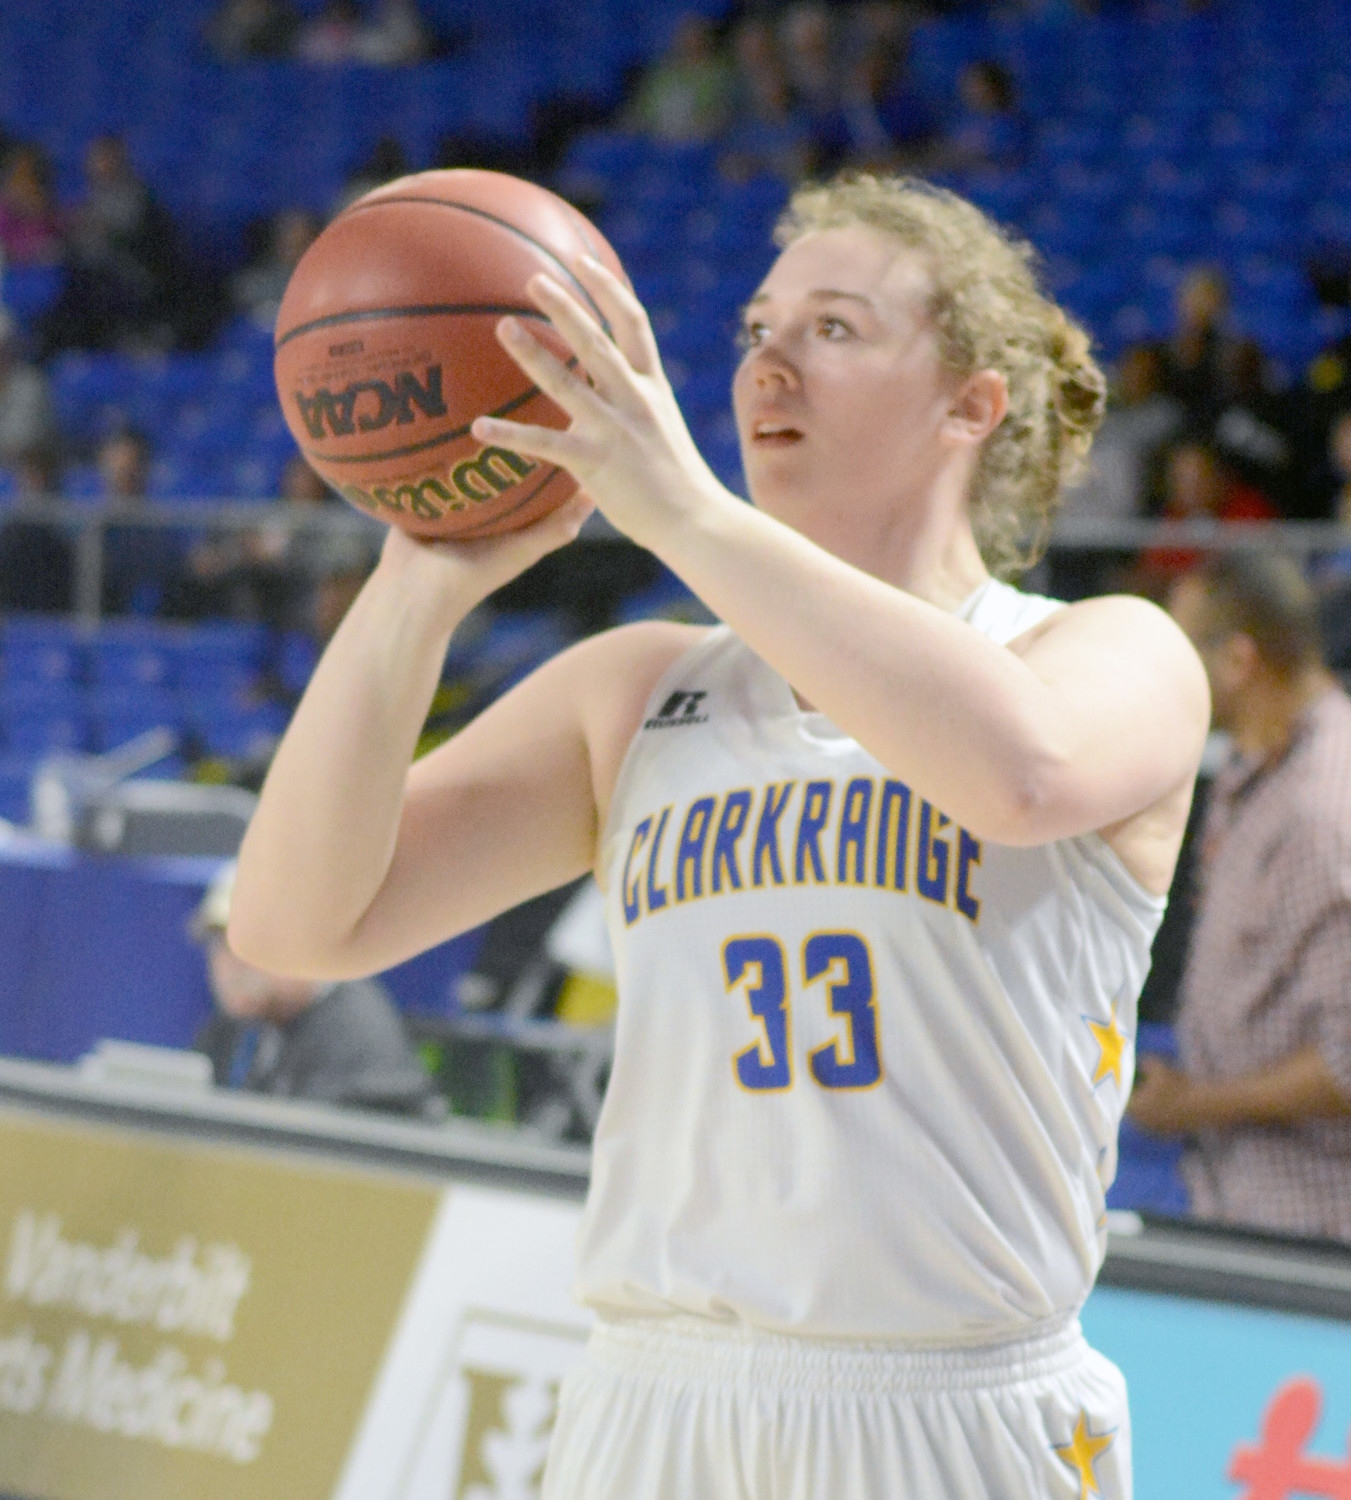 clarkrange women Learn about clarkrange high school womens basketball recruits in clarkrange create a free womens basketball recruiting profile to connect with college coaches.